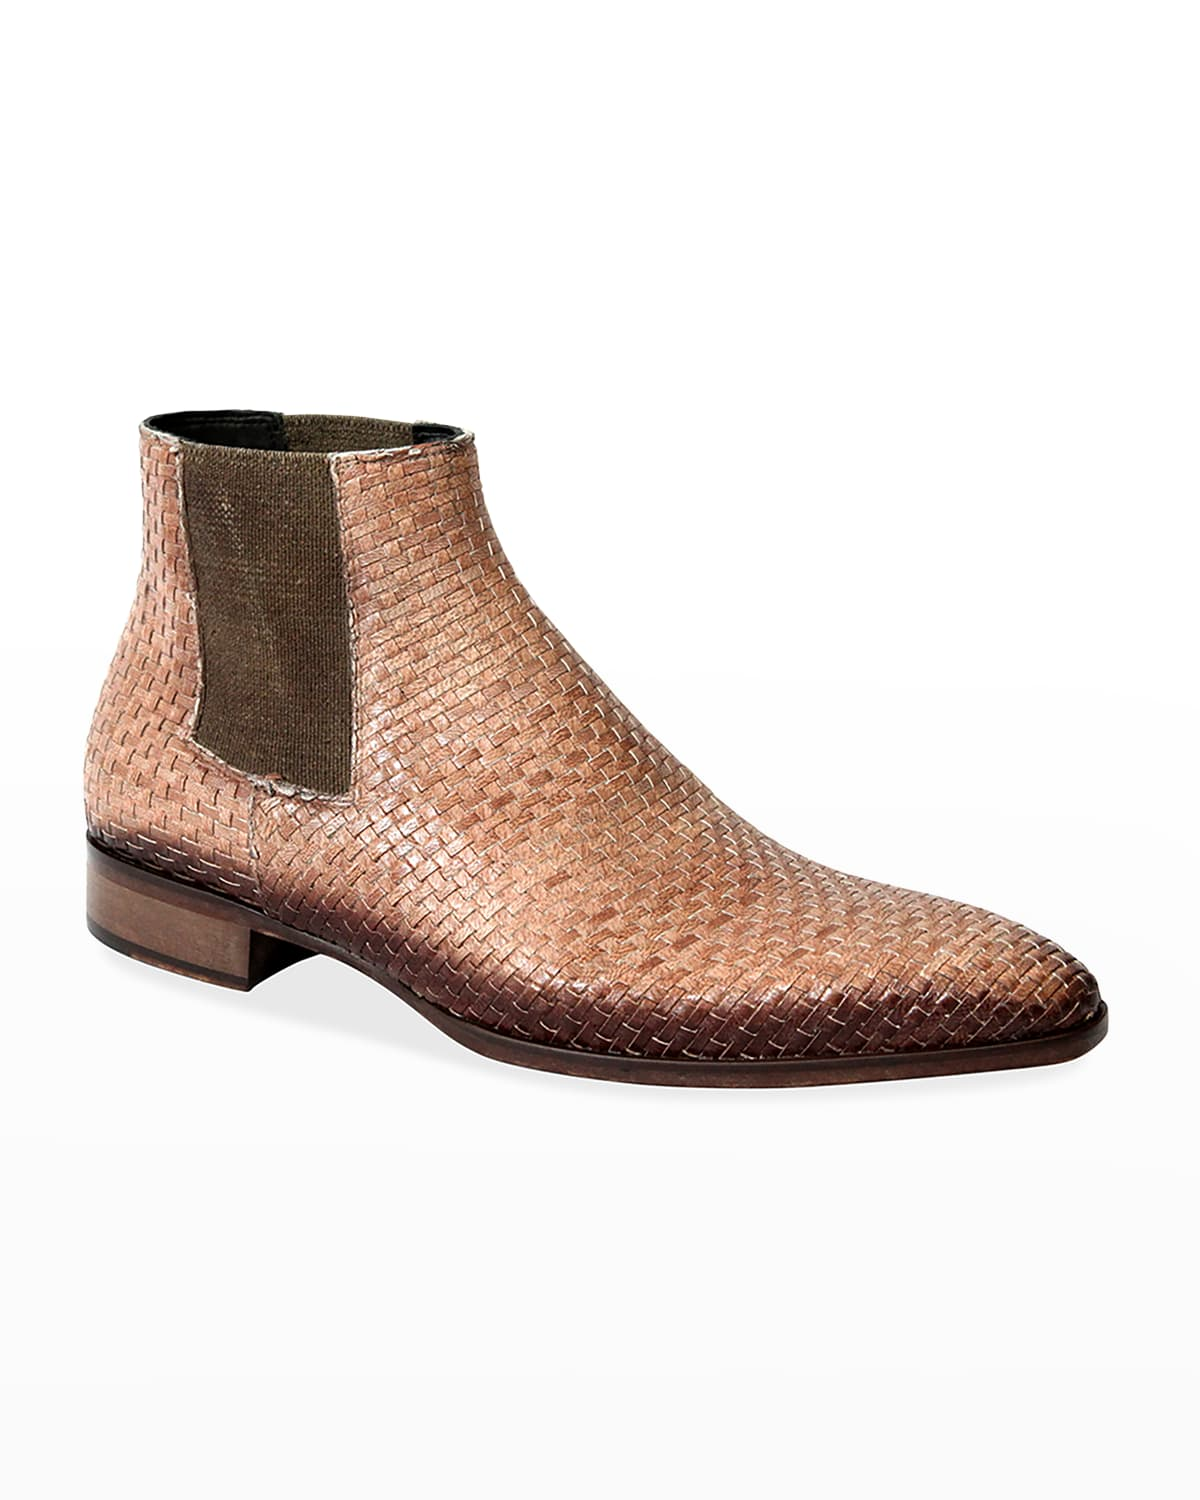 Men's Burnished Woven Chelsea Boots